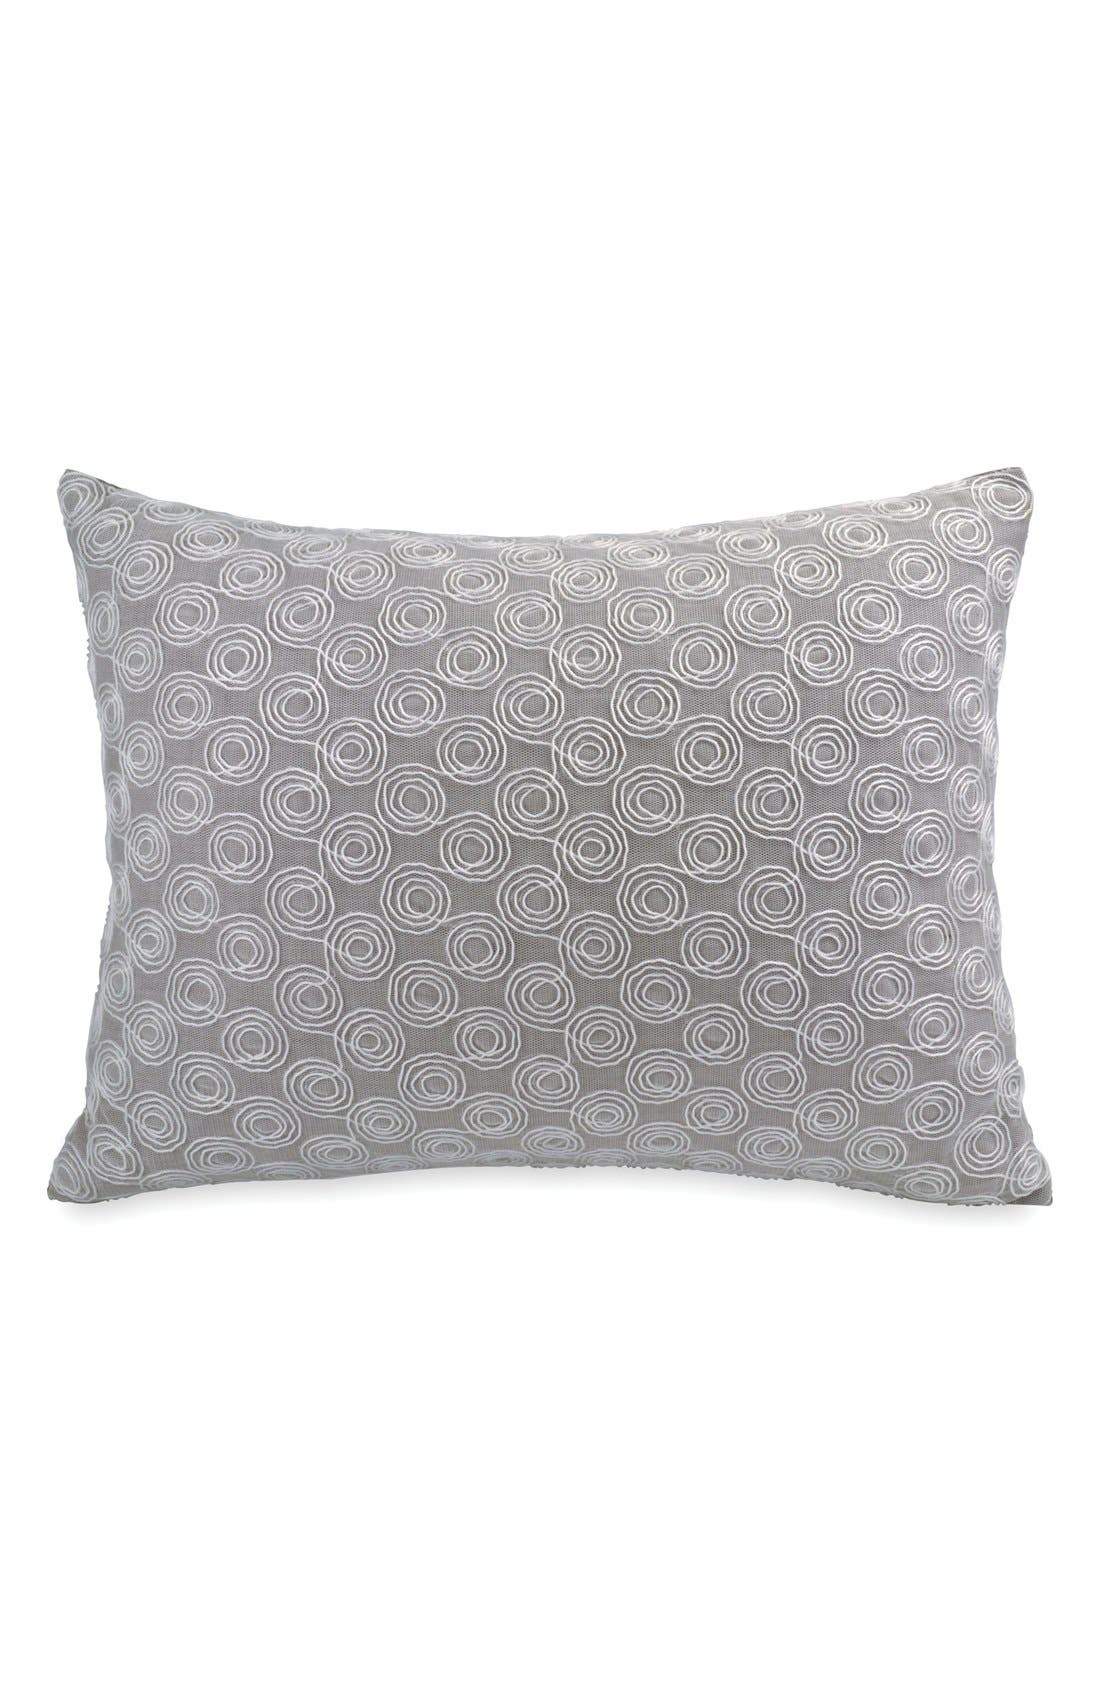 'Loft Stripe' Embroidered Pillow,                         Main,                         color, 020